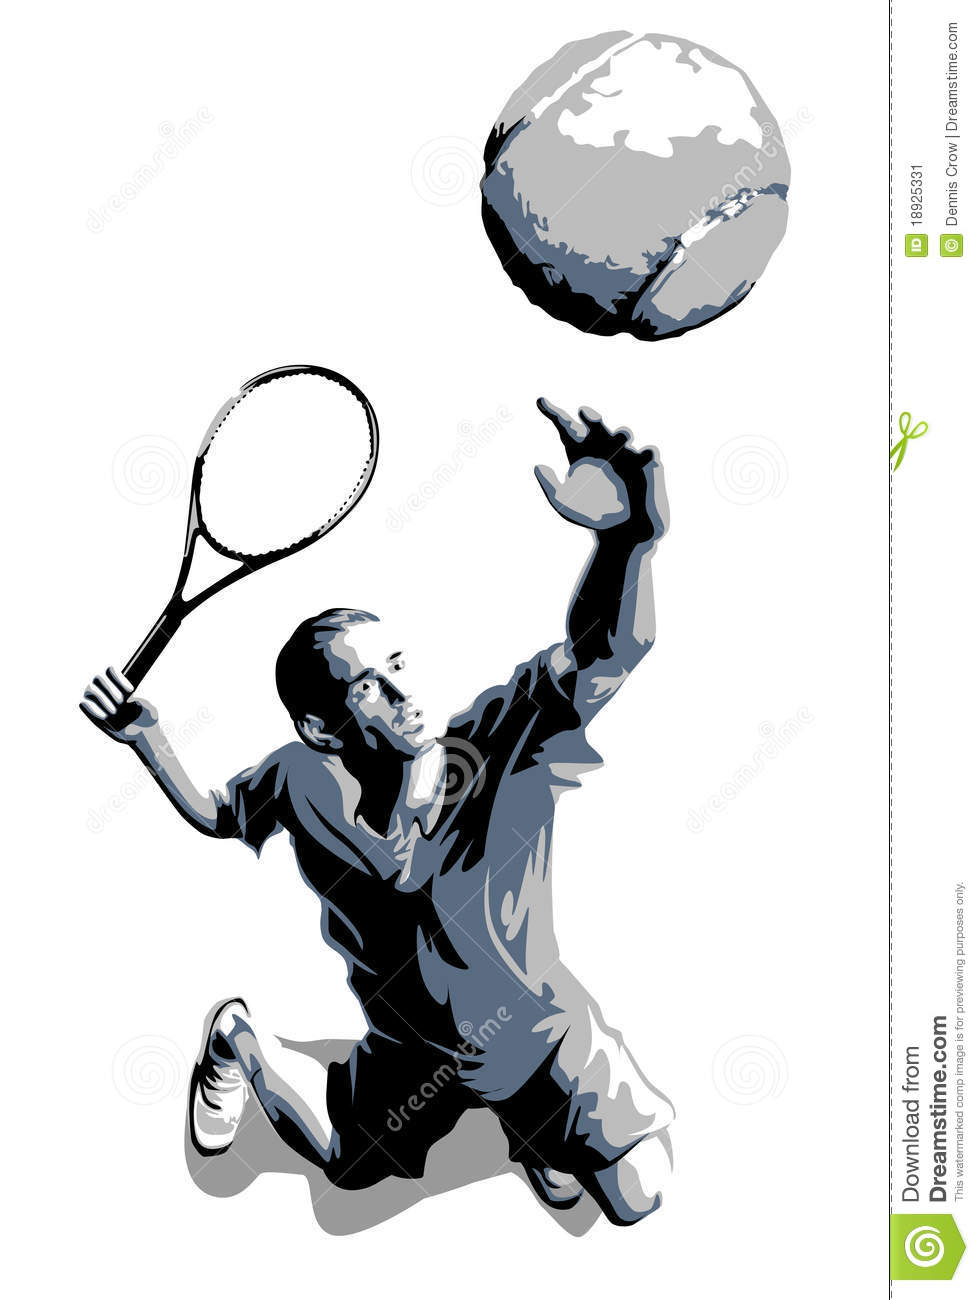 how to serve a tennis ball video